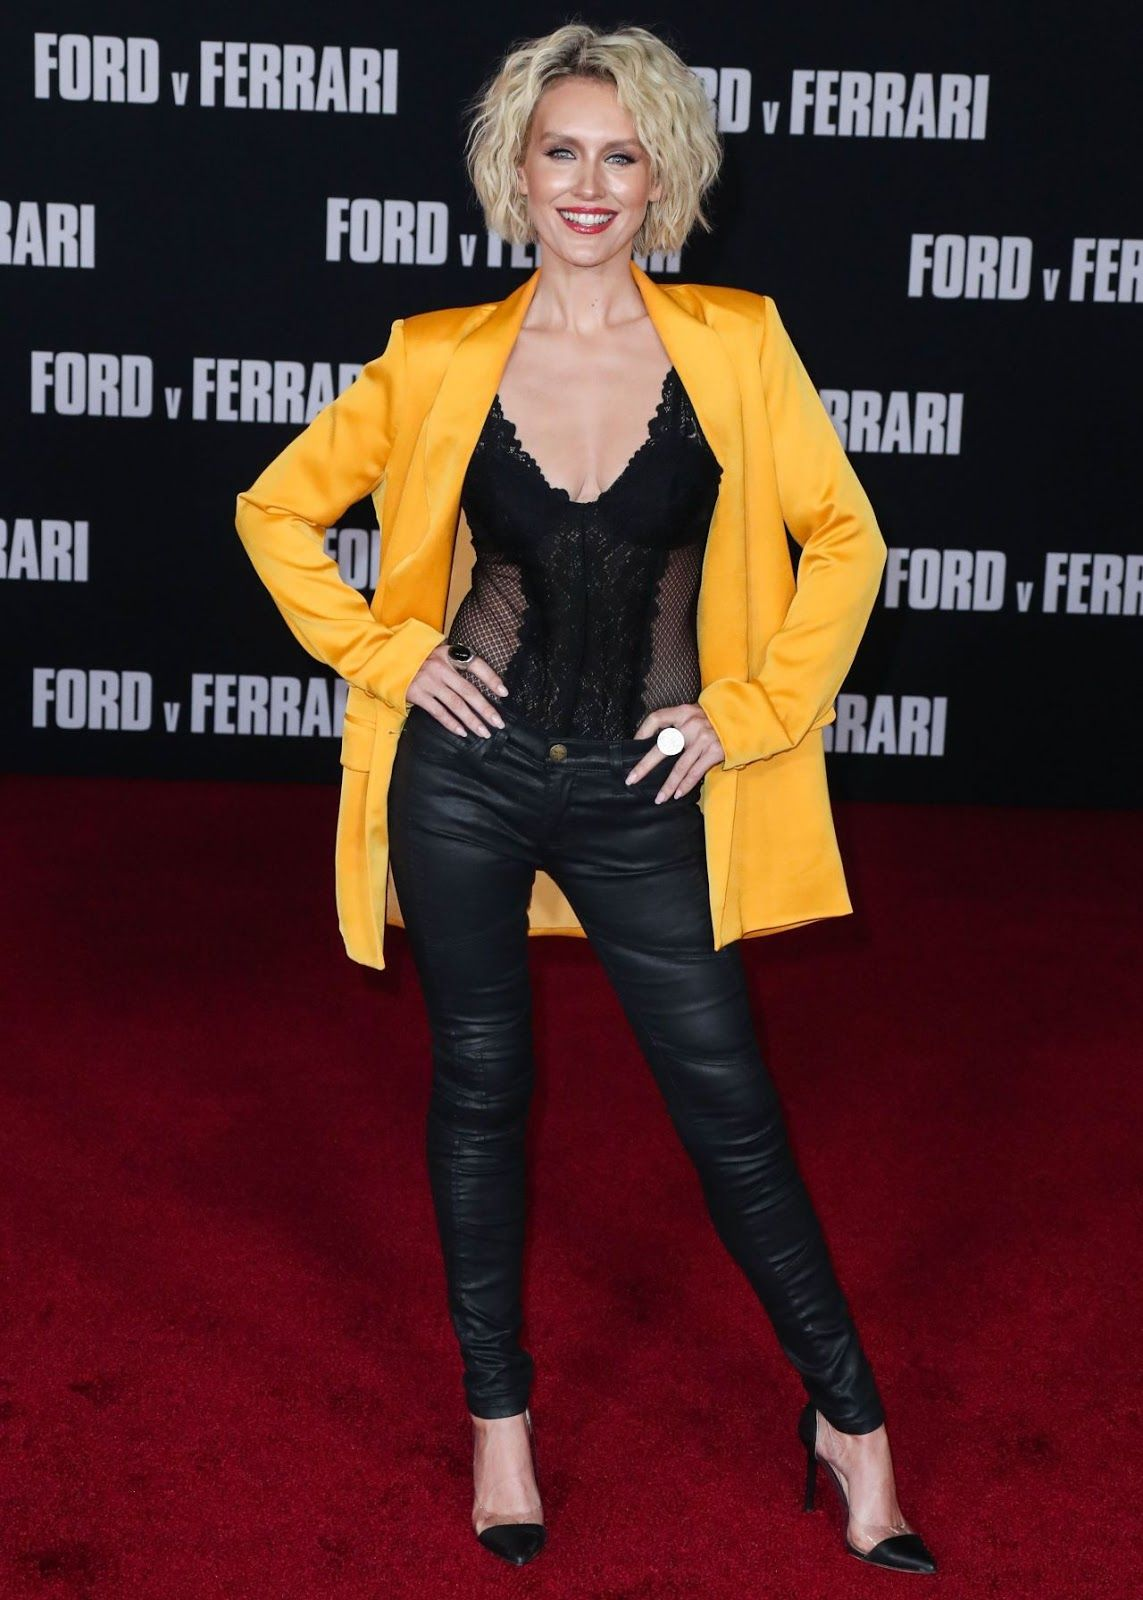 Nicky Whelan Ford V Ferrari Premiere In Hollywood Nicky